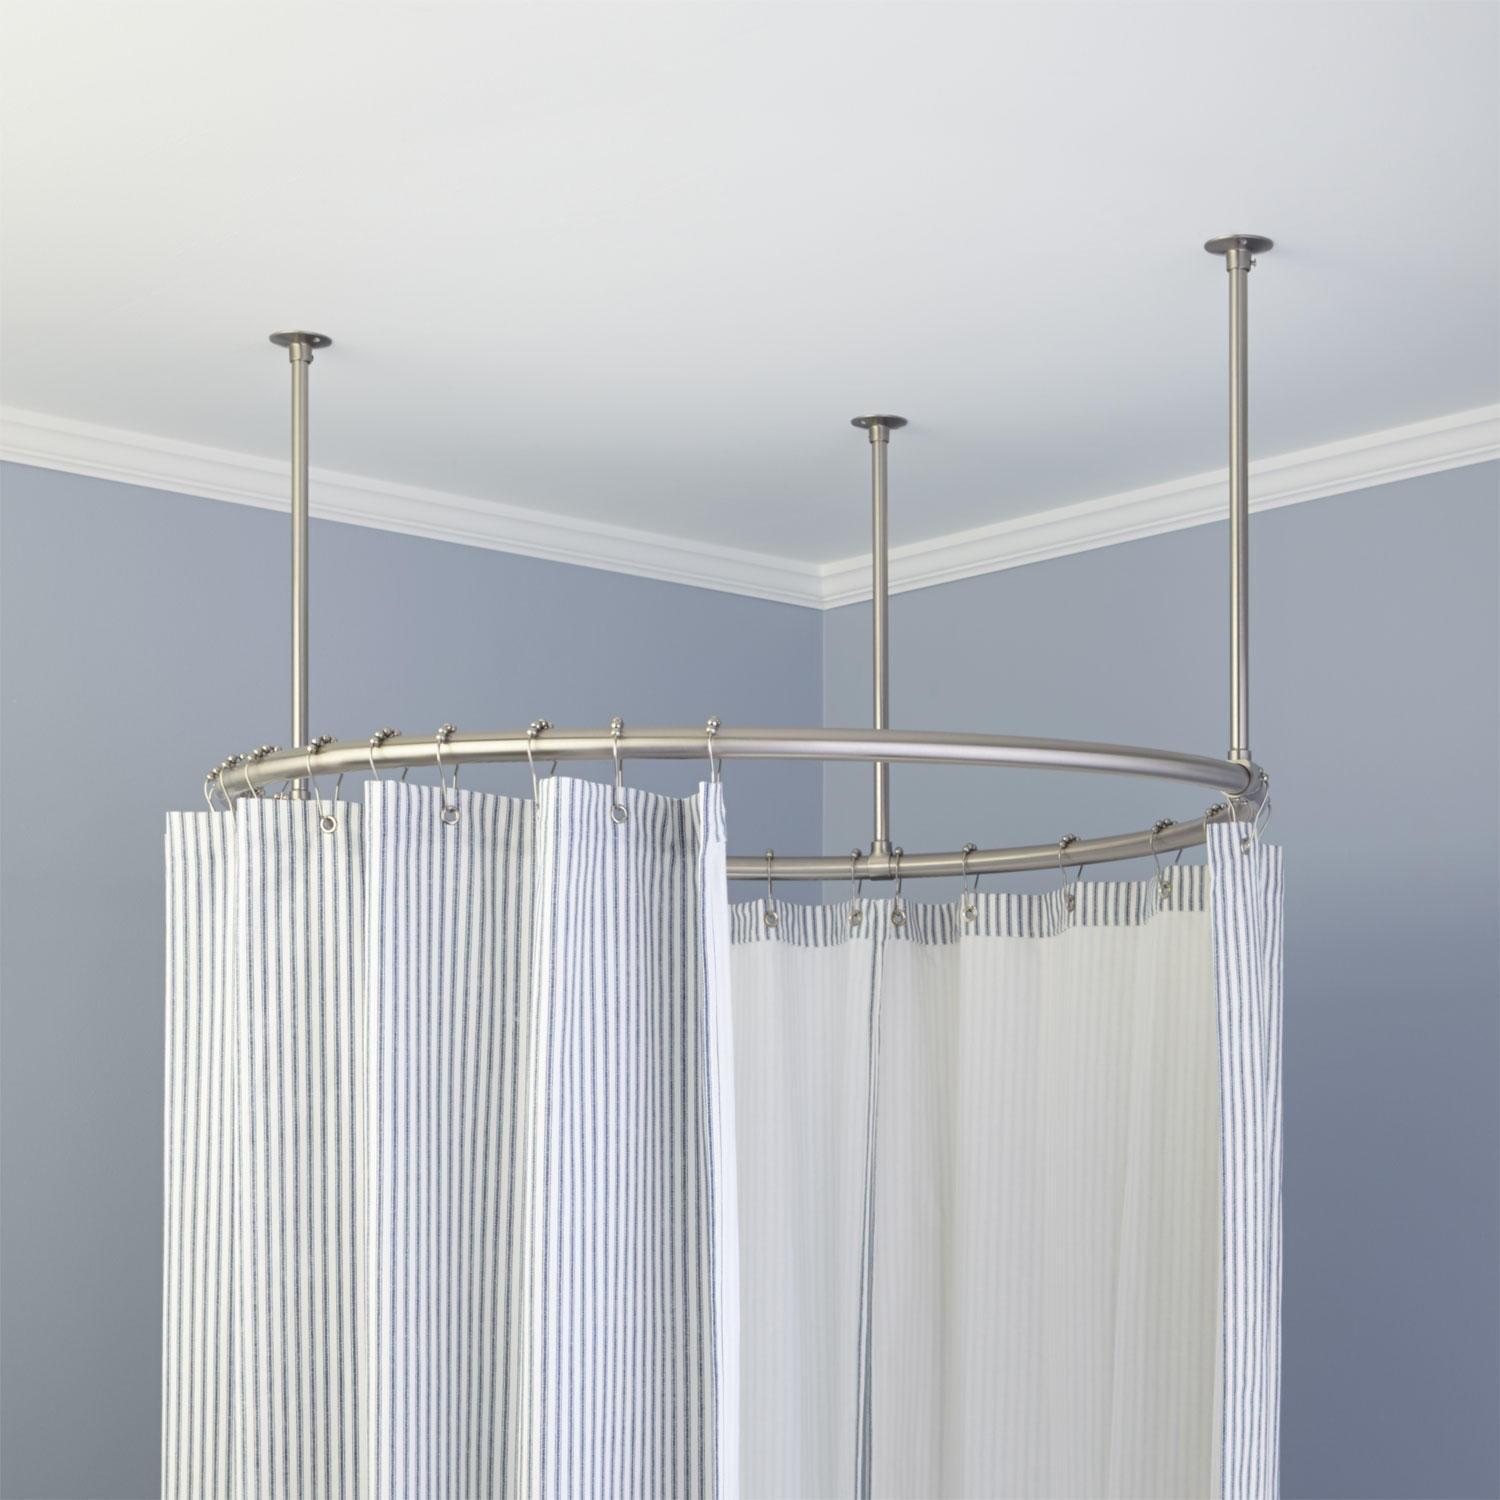 Round Clawfoot Tub Shower Curtain Bed Shower Design Of inside sizing 1500 X 1500